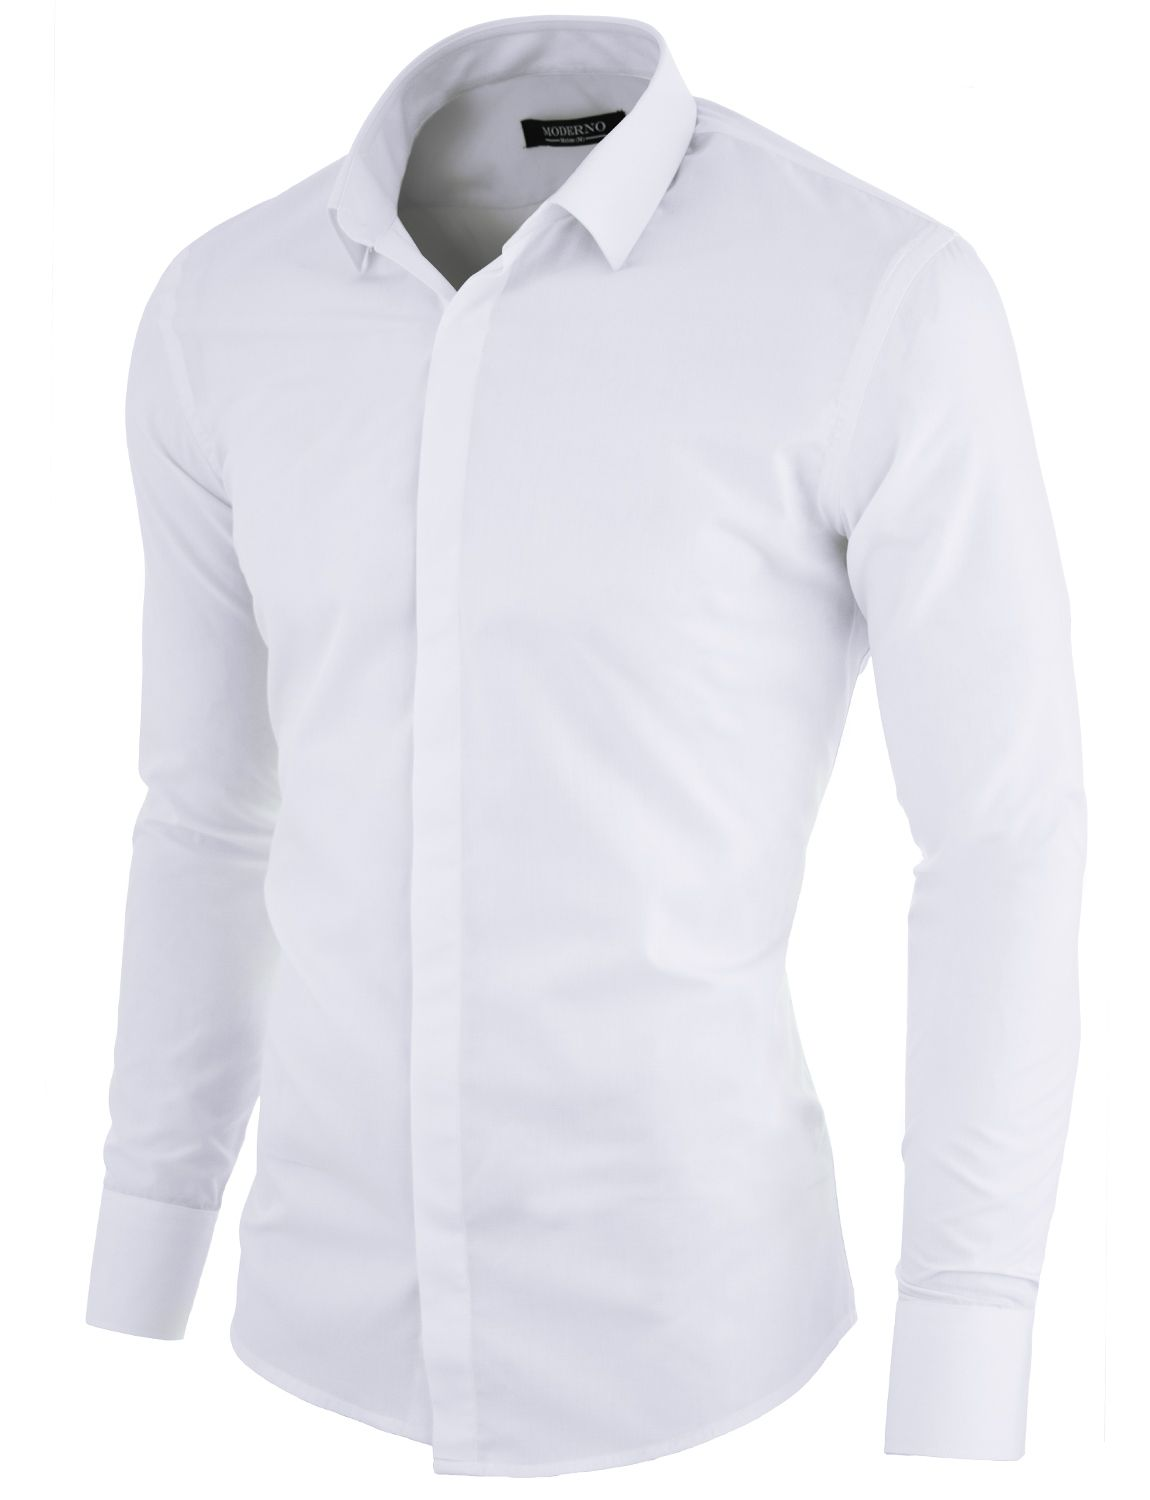 MODERNO Slim Fit Mens Dress Shirt with Hidden Closer White. FREE shipping  worldwide! 30 days return policy 2f2530e10179